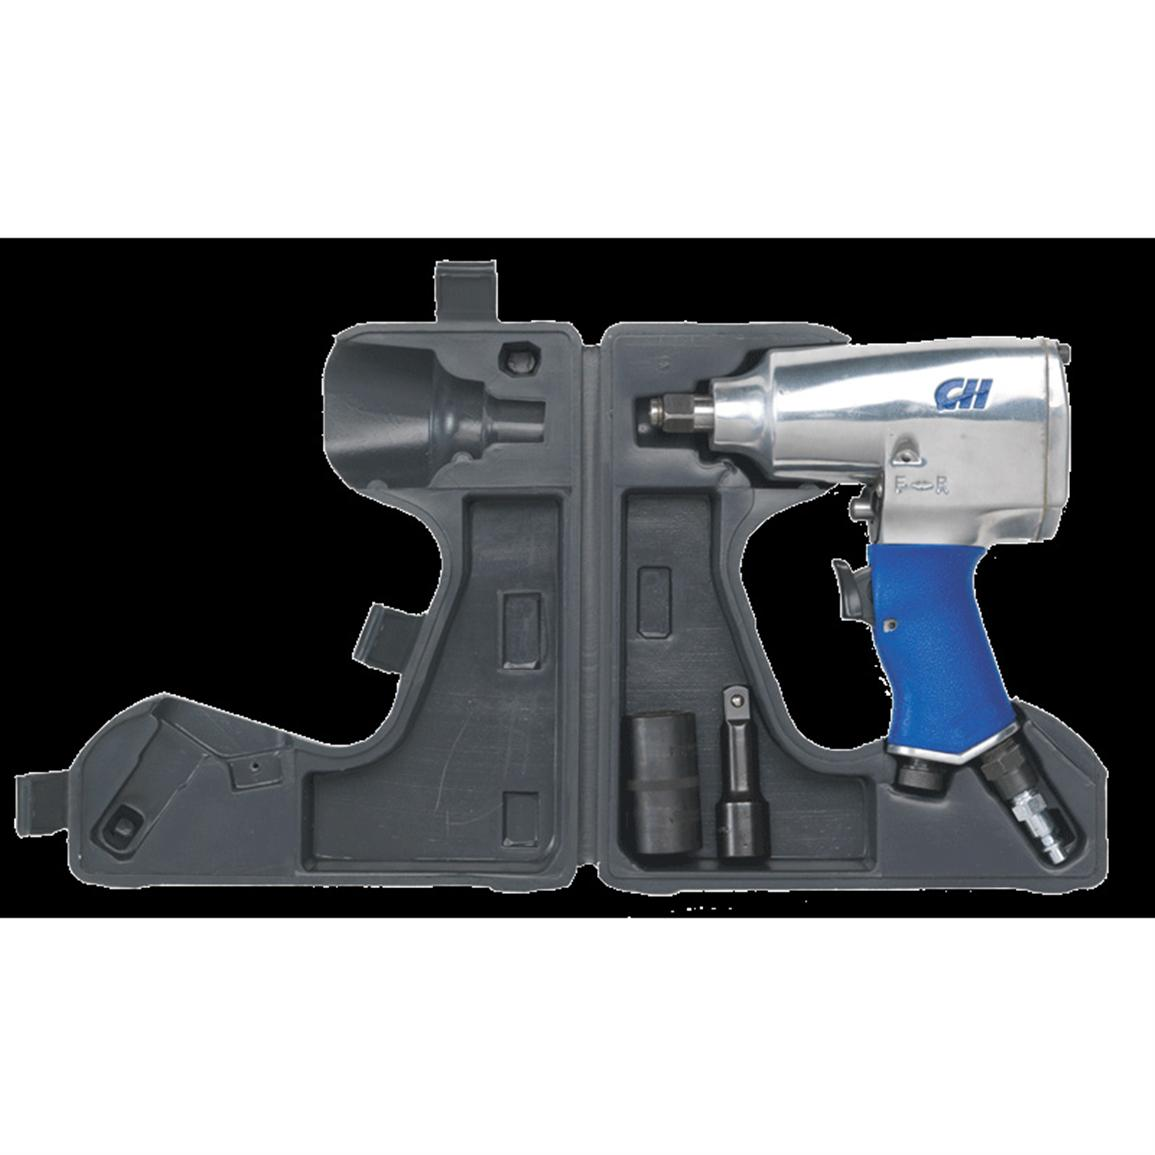 "Campbell Hausfeld® 1/2"" Impact Wrench"